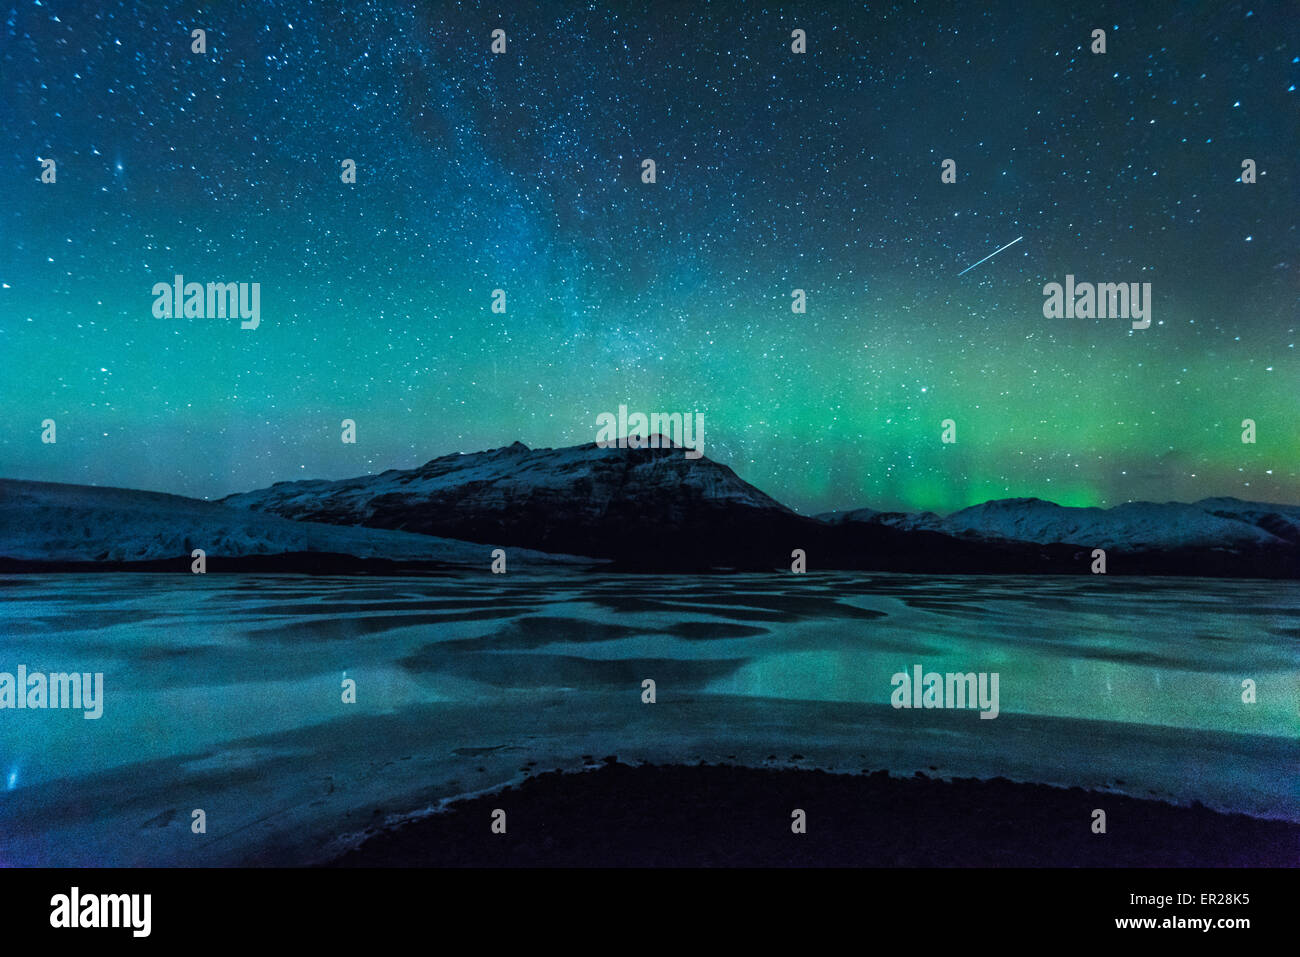 Aurora over Iceland - Stock Image